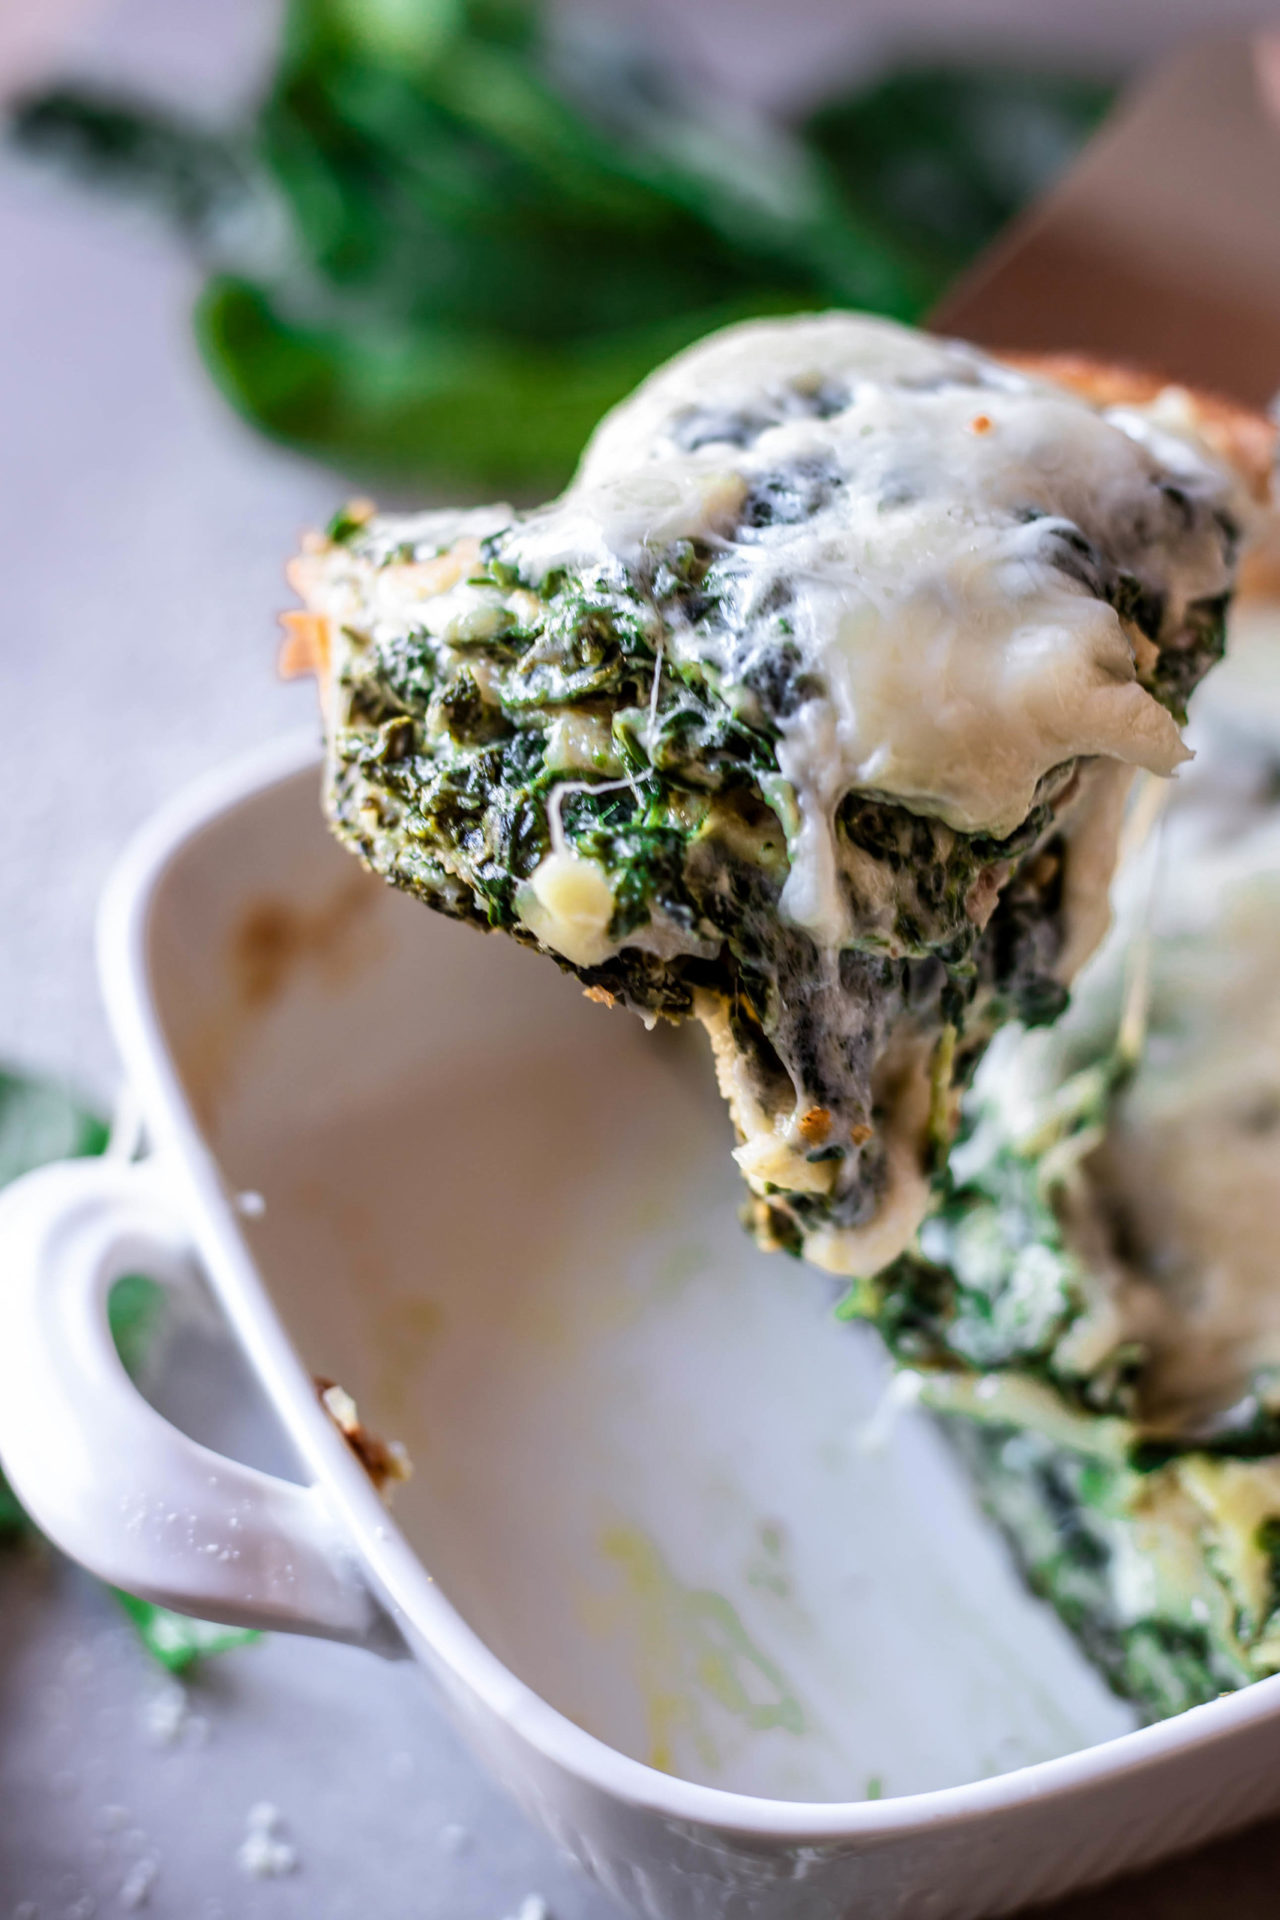 This Crepes Lasagna with Spinach & Ricotta Cheese  is so flavorful, cheesy, spinach infused, super creamy, healthy, very simple to make and beyond delicious! Plus it is completely gluten-free and Low FODMAP.